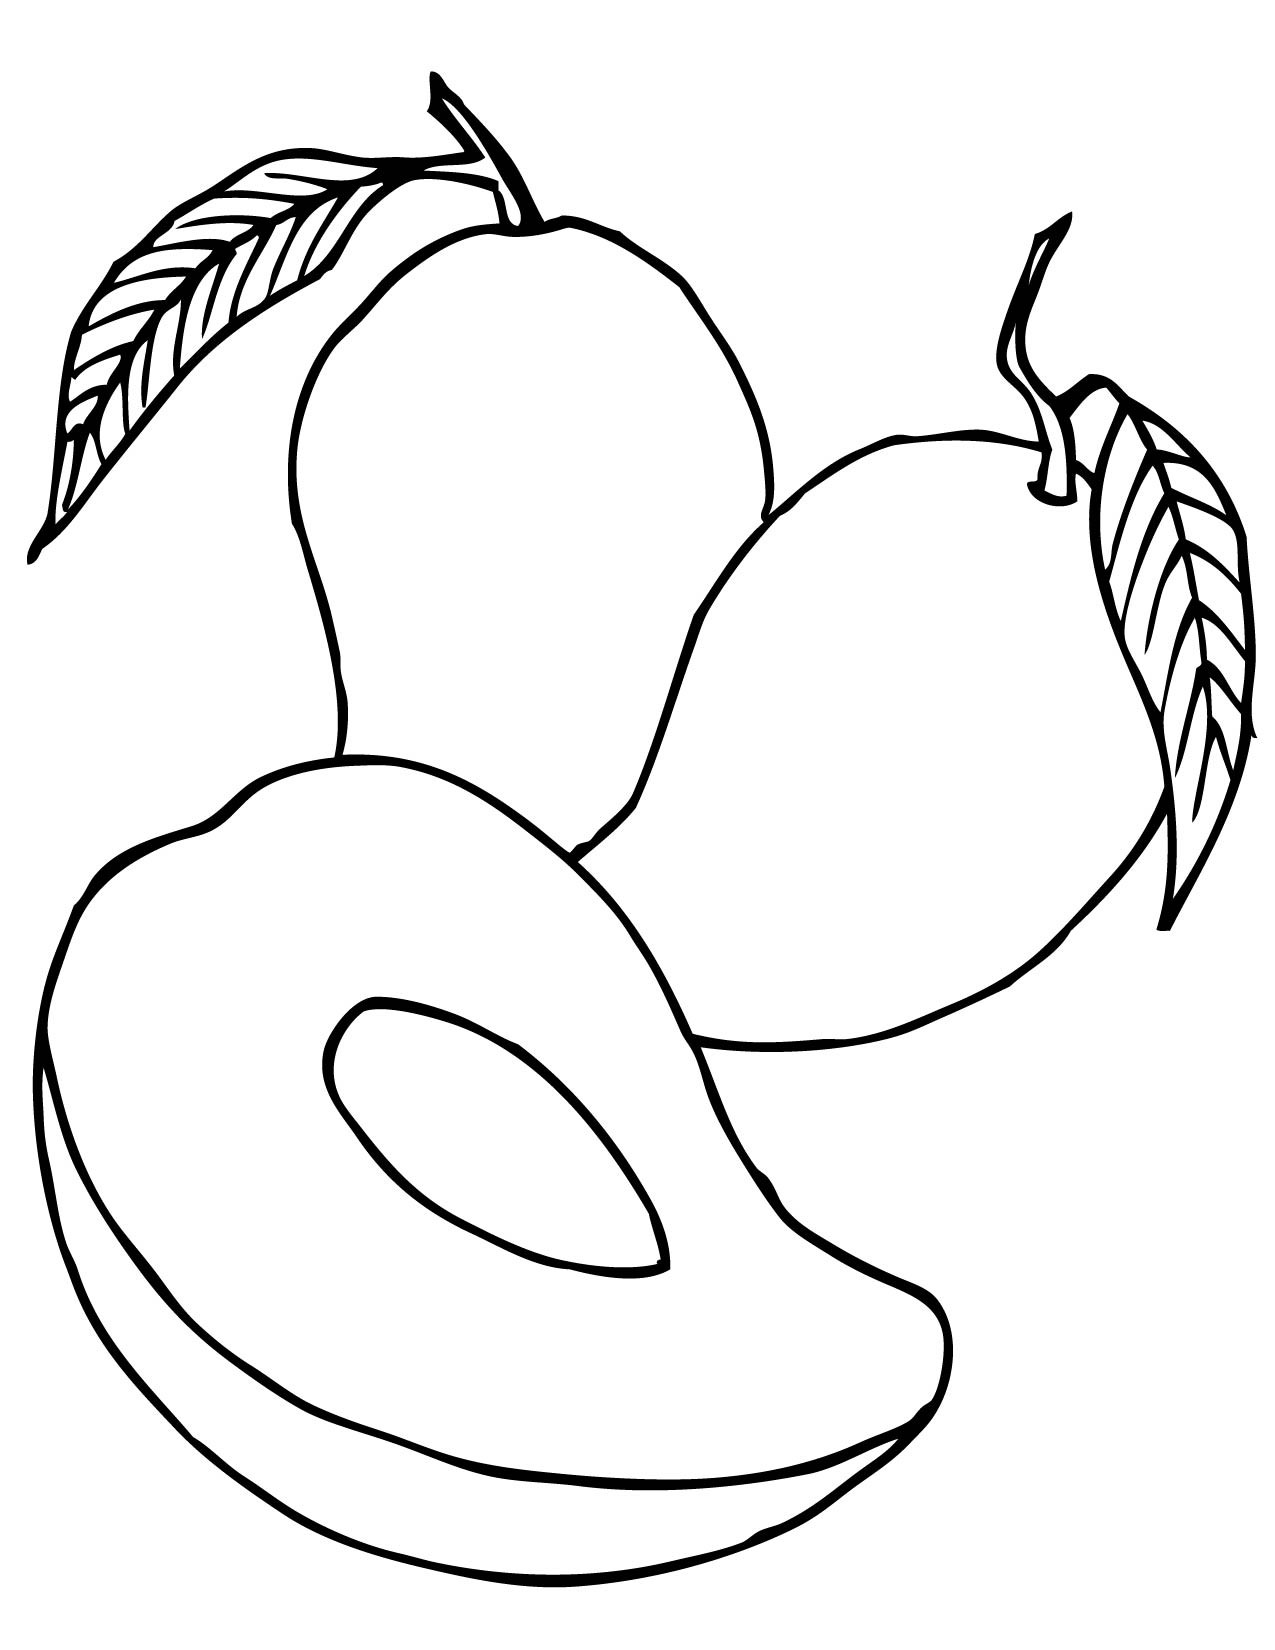 1275x1650 Mango Fruits Coloring Pages For Kids Freecolorngpages.co